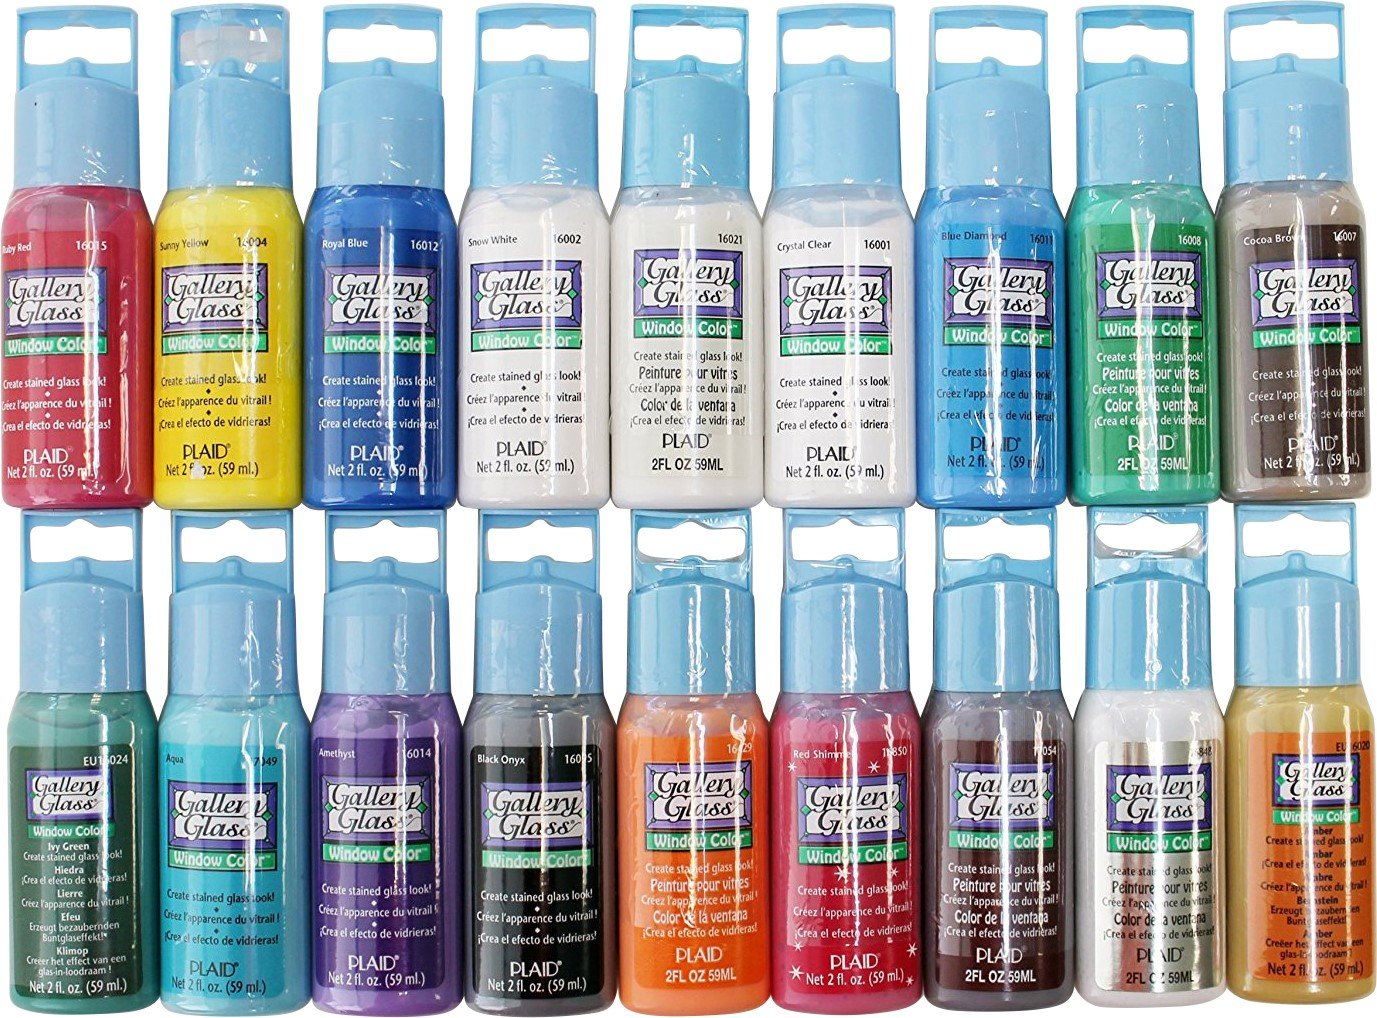 Plaid Gallery Glass Window Color Paint Set (2-Ounce), PROMOGGI (18-Colors) by Gallery Glass